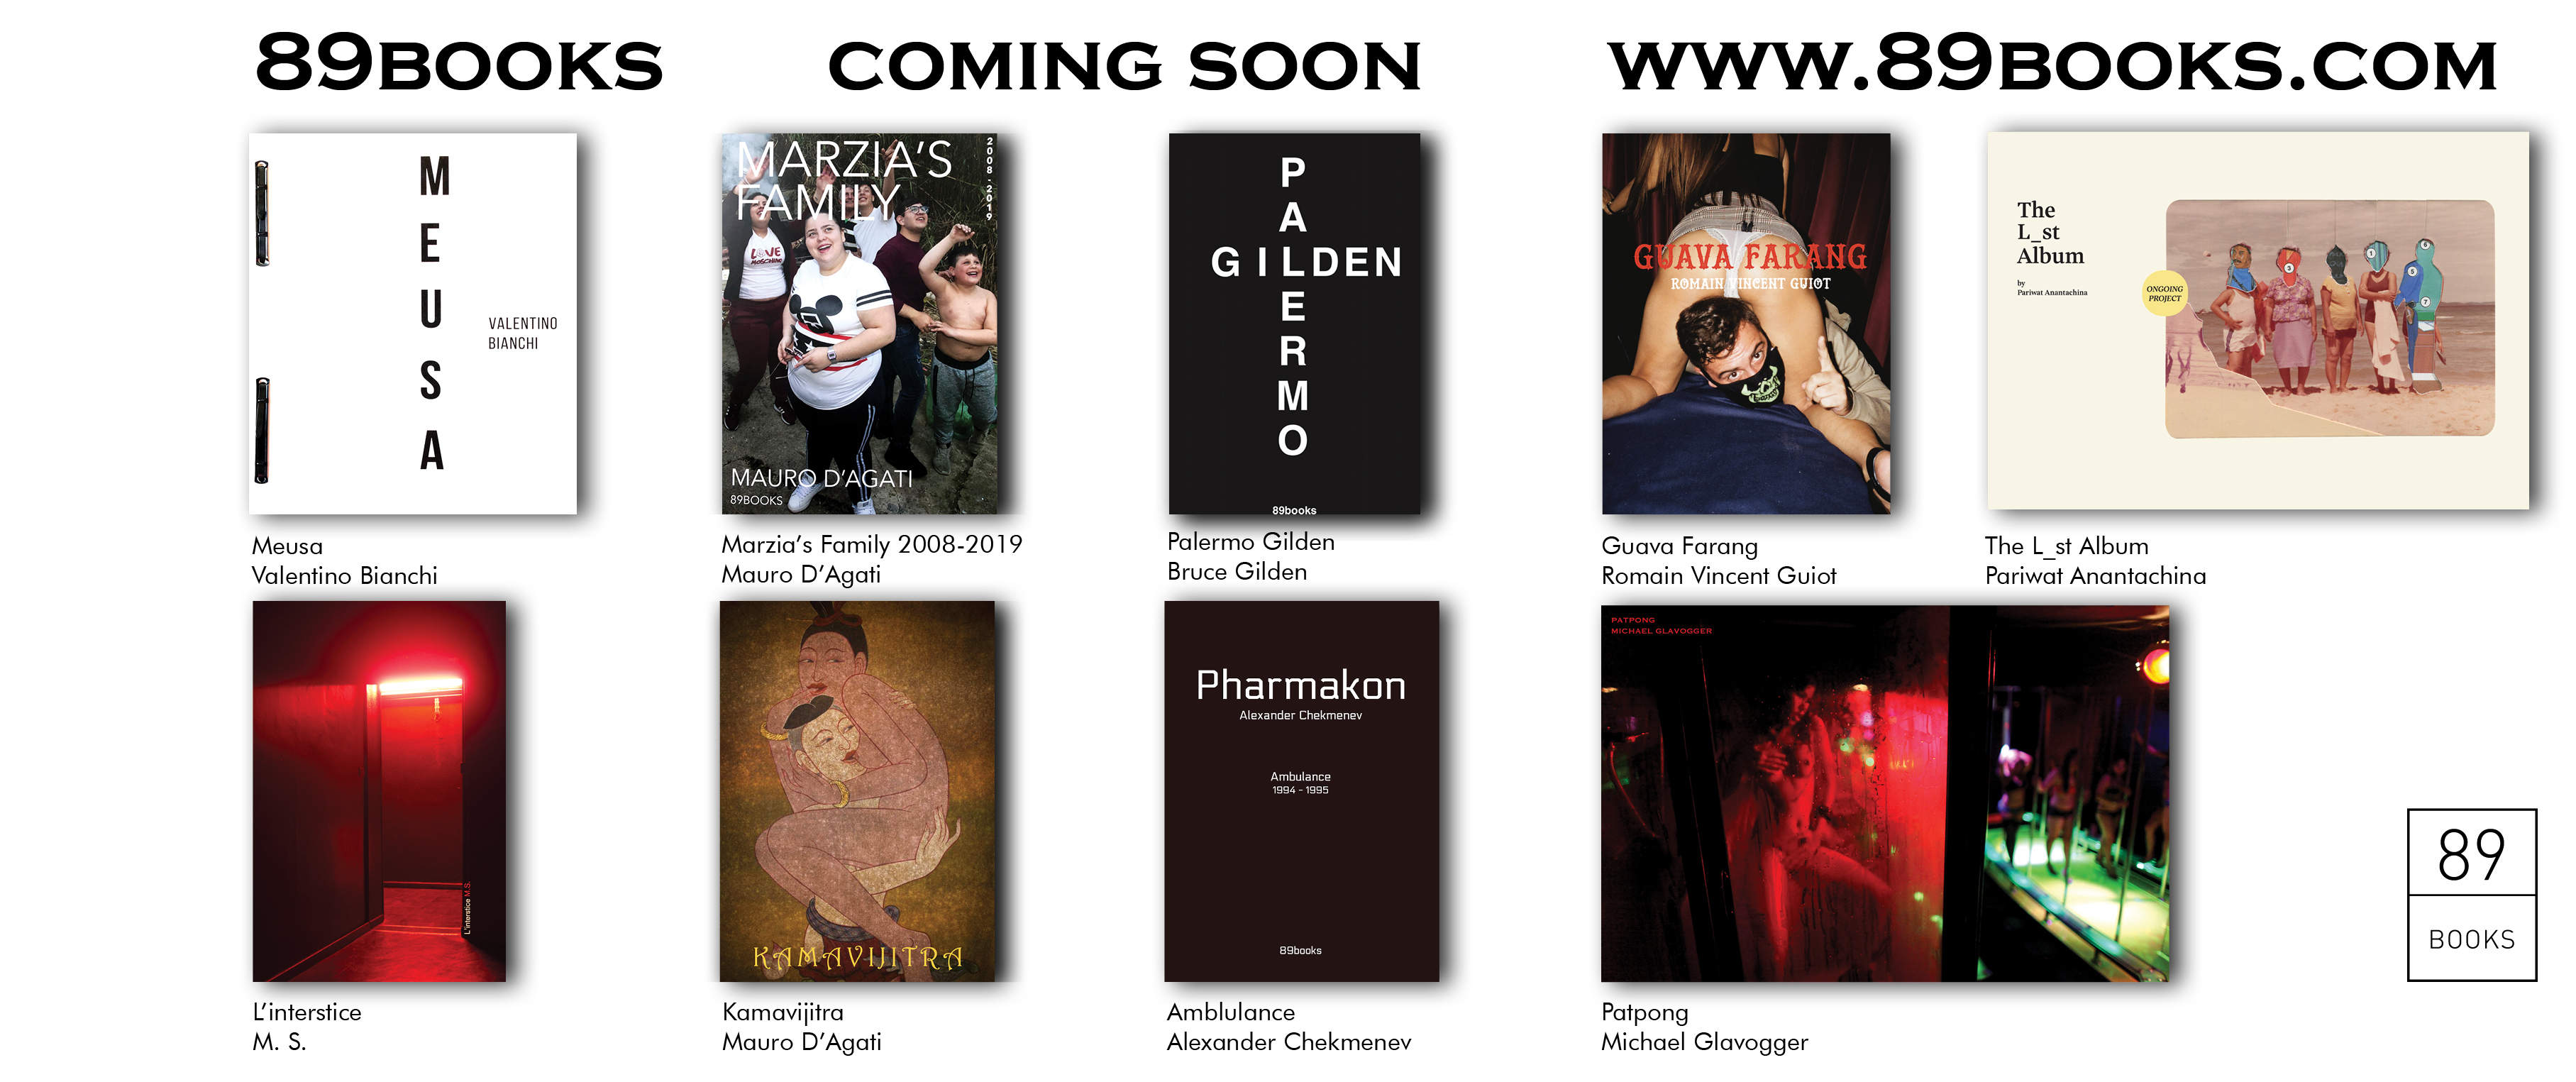 New publications coming soon!